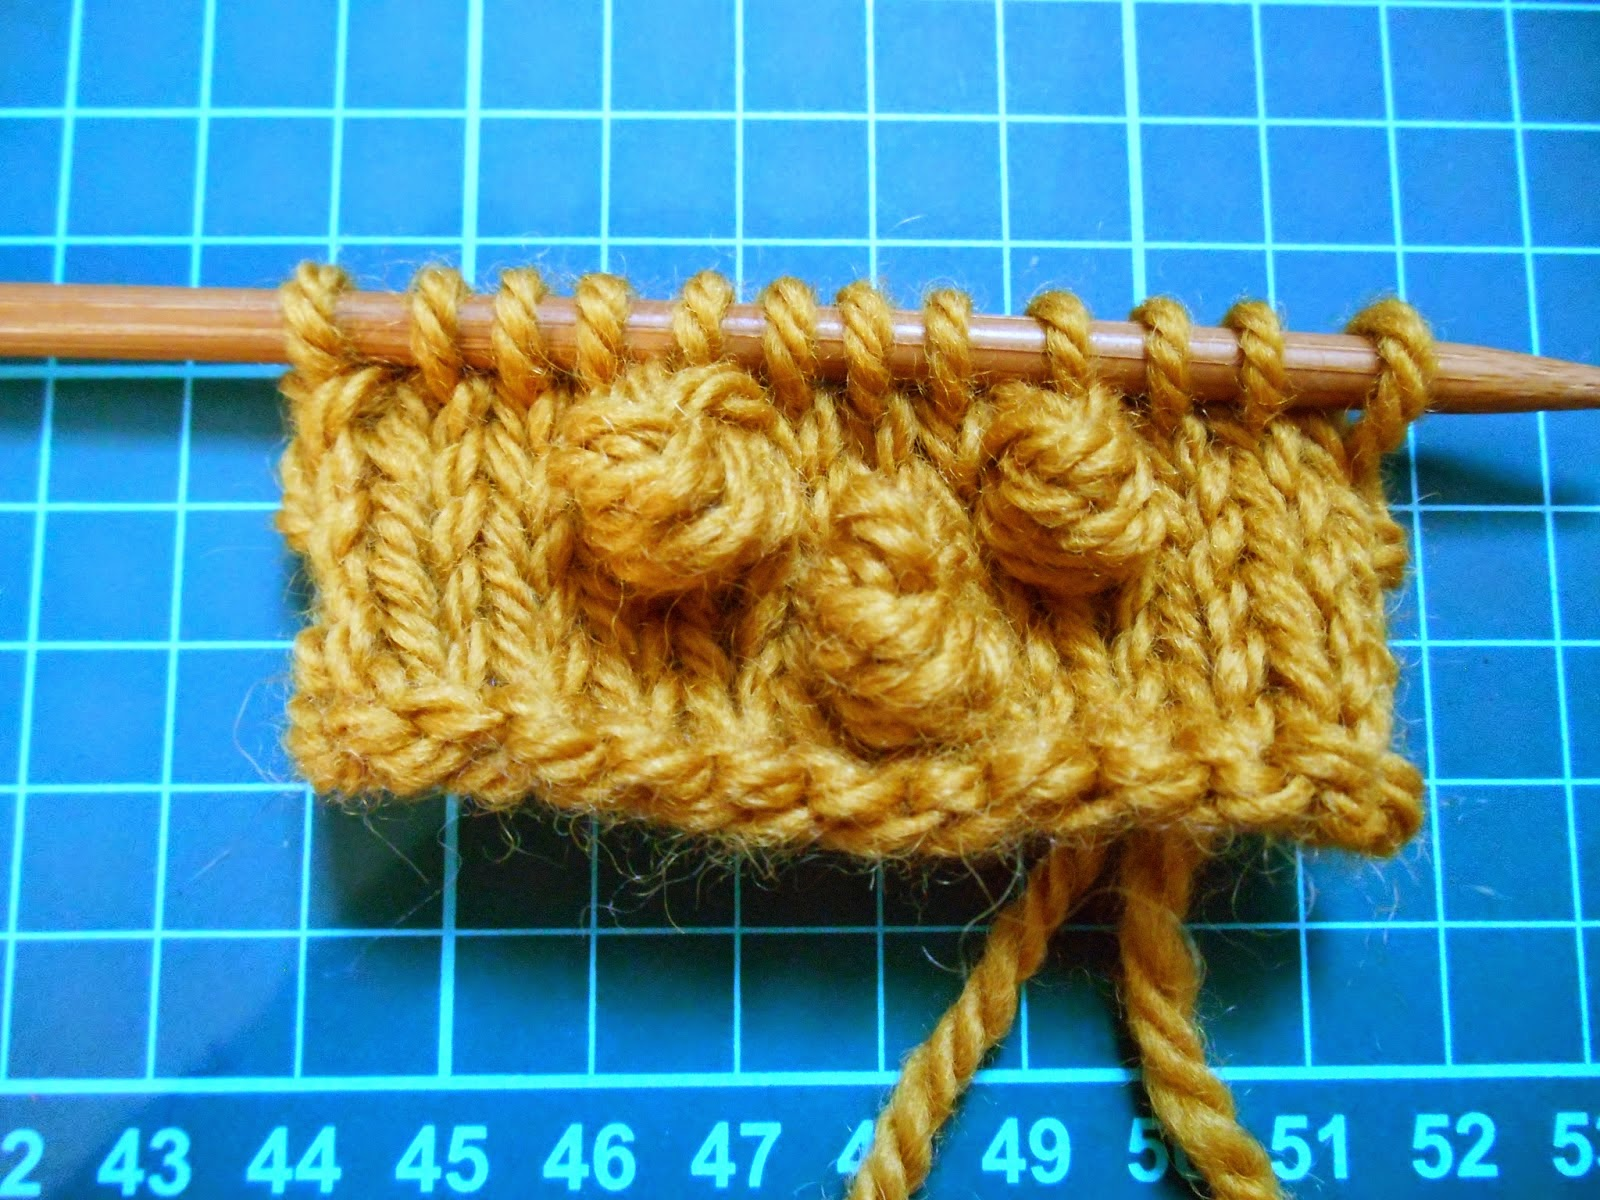 http://soleneknits.blogspot.fr/2014/11/photo-tutorial-make-bobble-tuto-photo.html